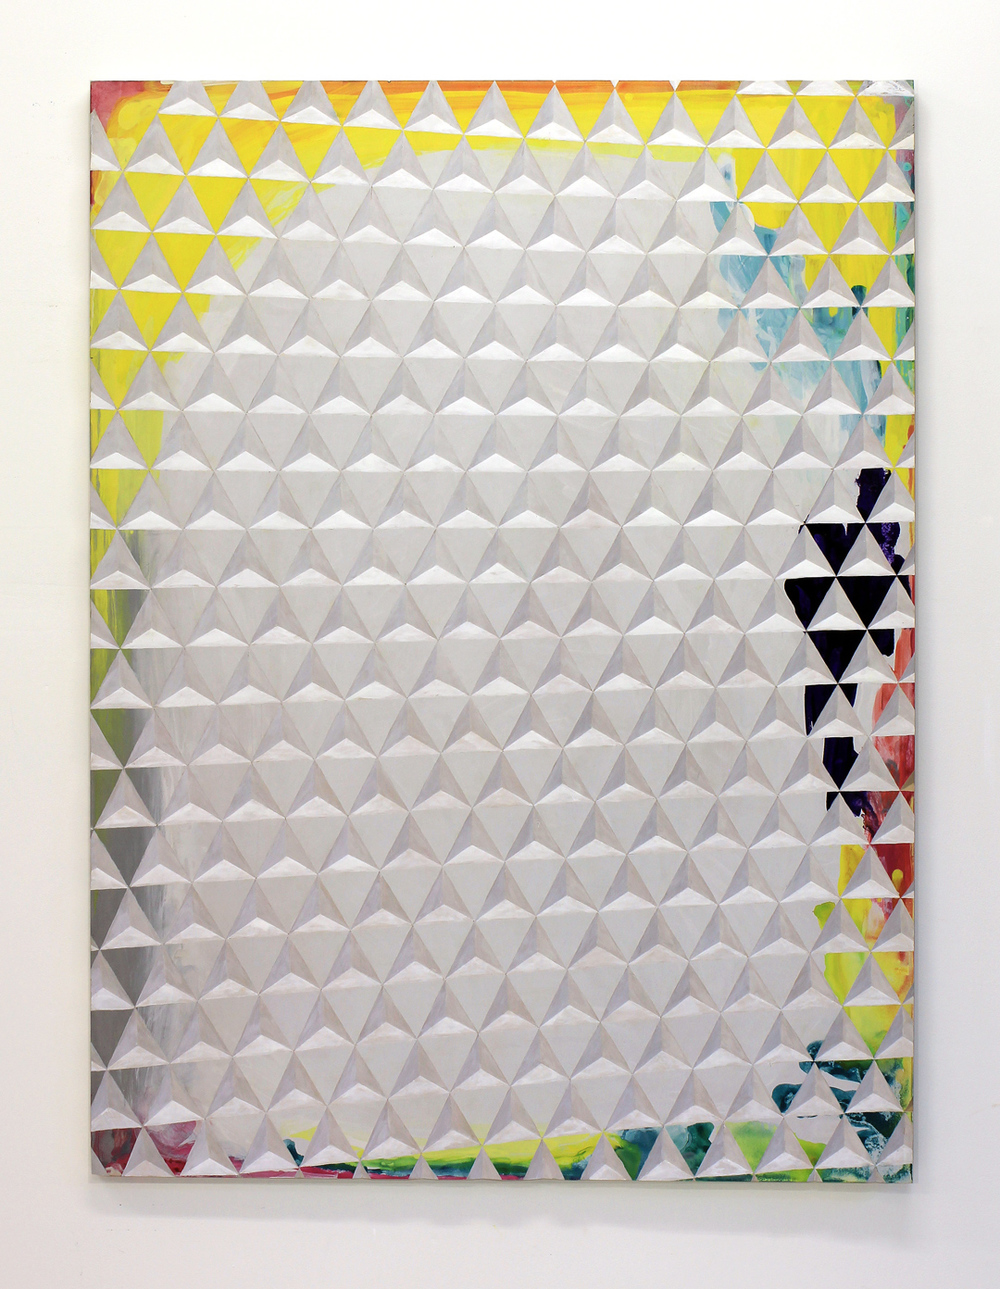 Gerard Mullin ,  Mixed-mediocre,  2014, Watercolor, gouache, and acrylic on wood, 40 x 30 in.